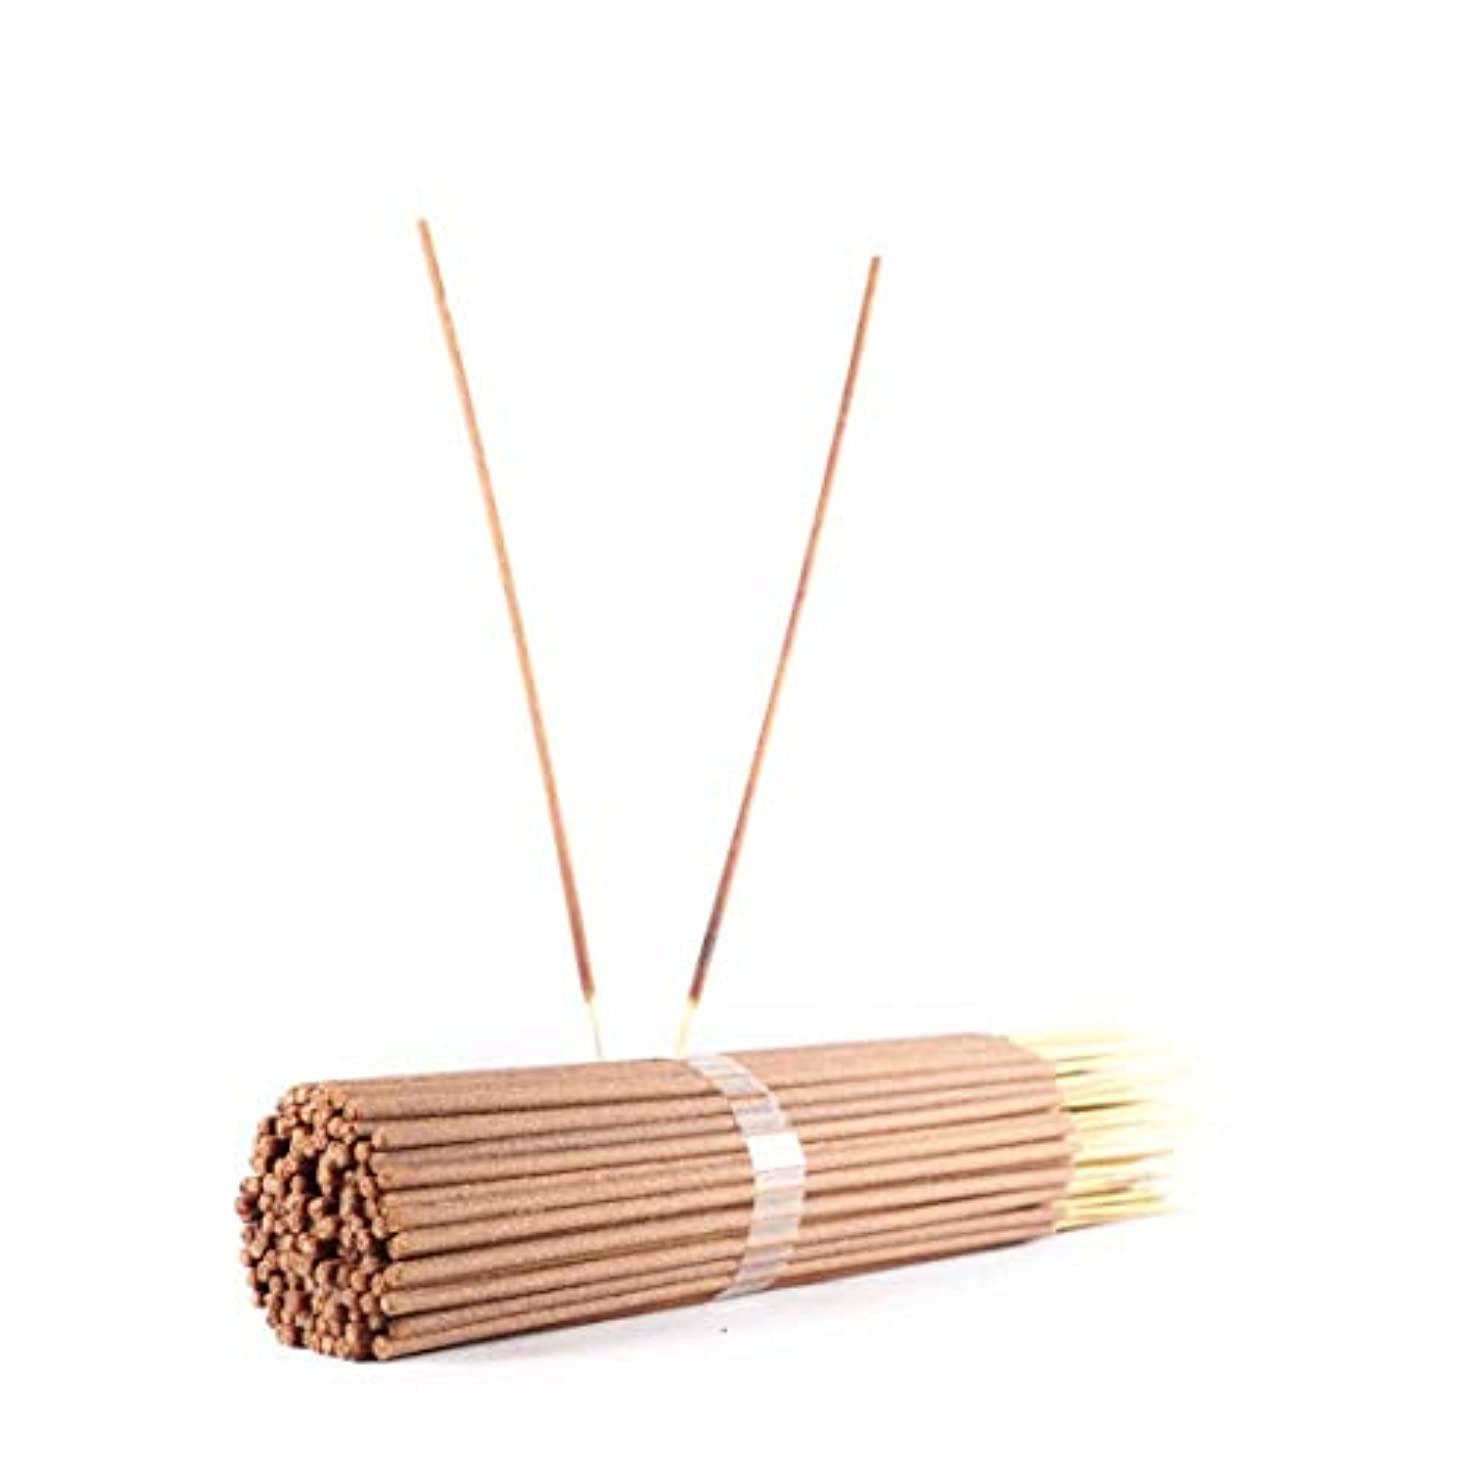 ドラゴン疲労フリンジGifteniaa Wonderful Vaishnavi Fragrant 9 Inches insence Sticks and Masala Insence Sticks (50 Sticks)